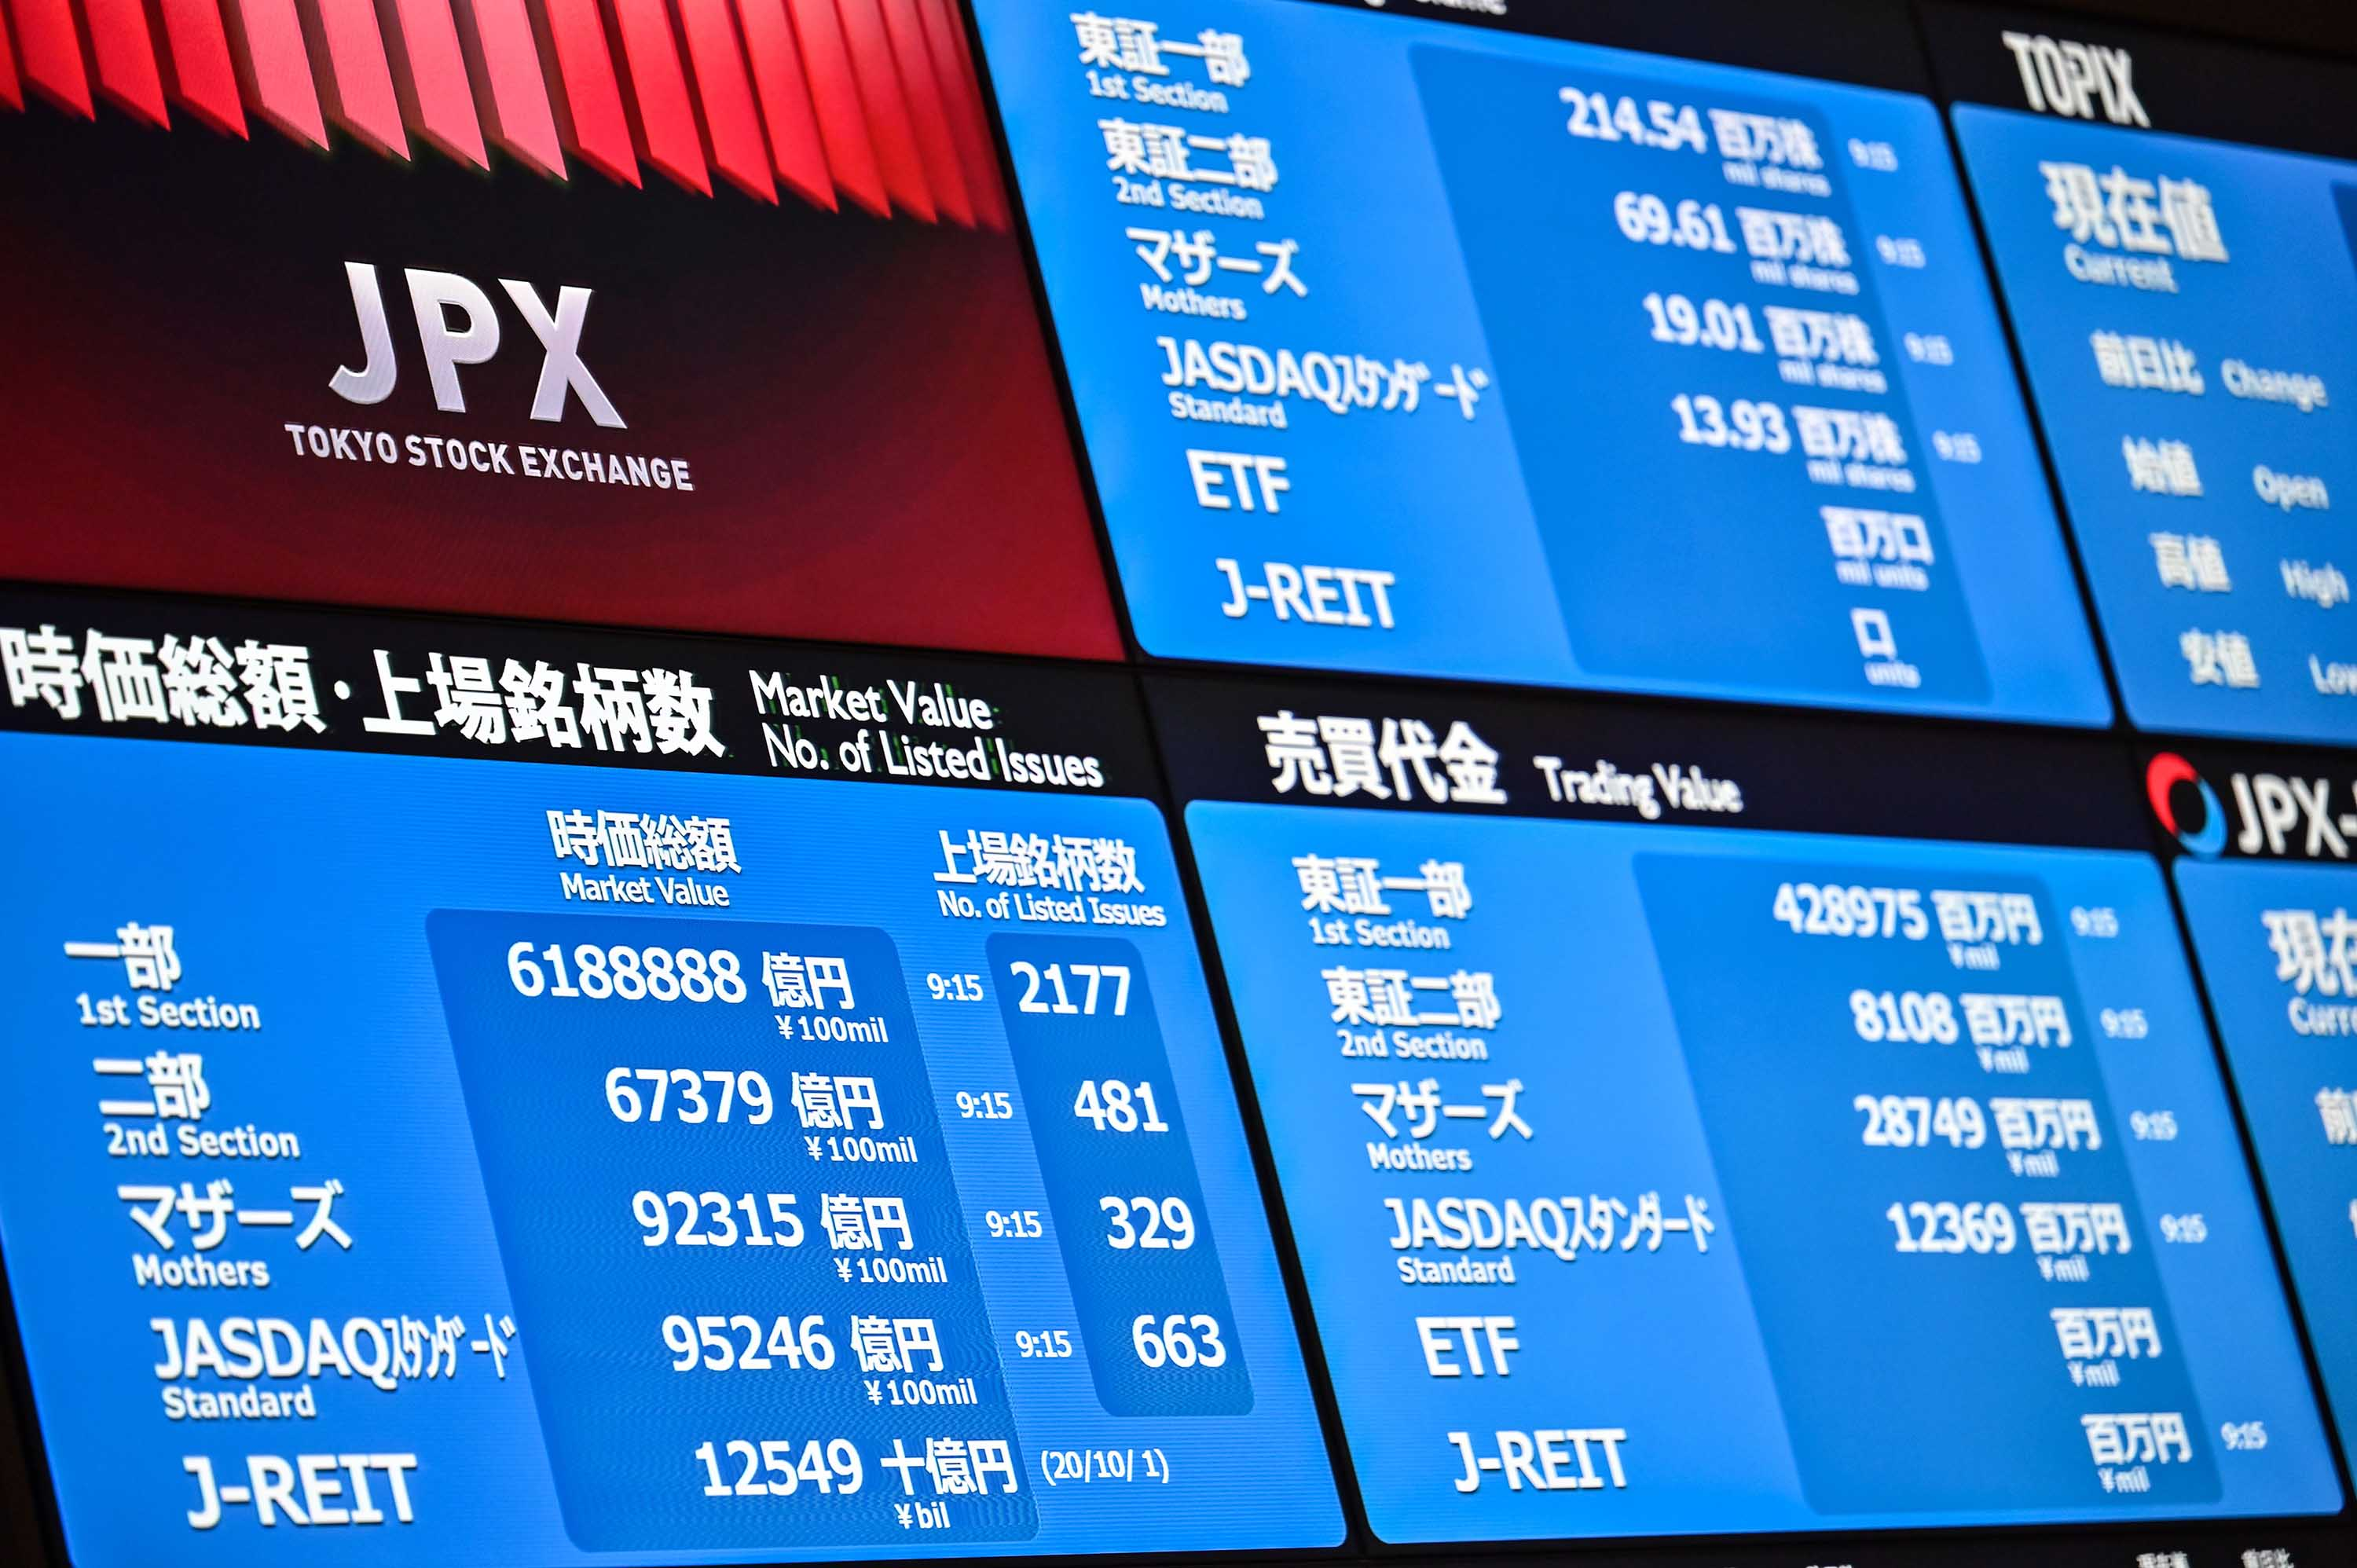 A general view shows stocks during the opening of the Japan Stock Exchange in Tokyo, on October 2.